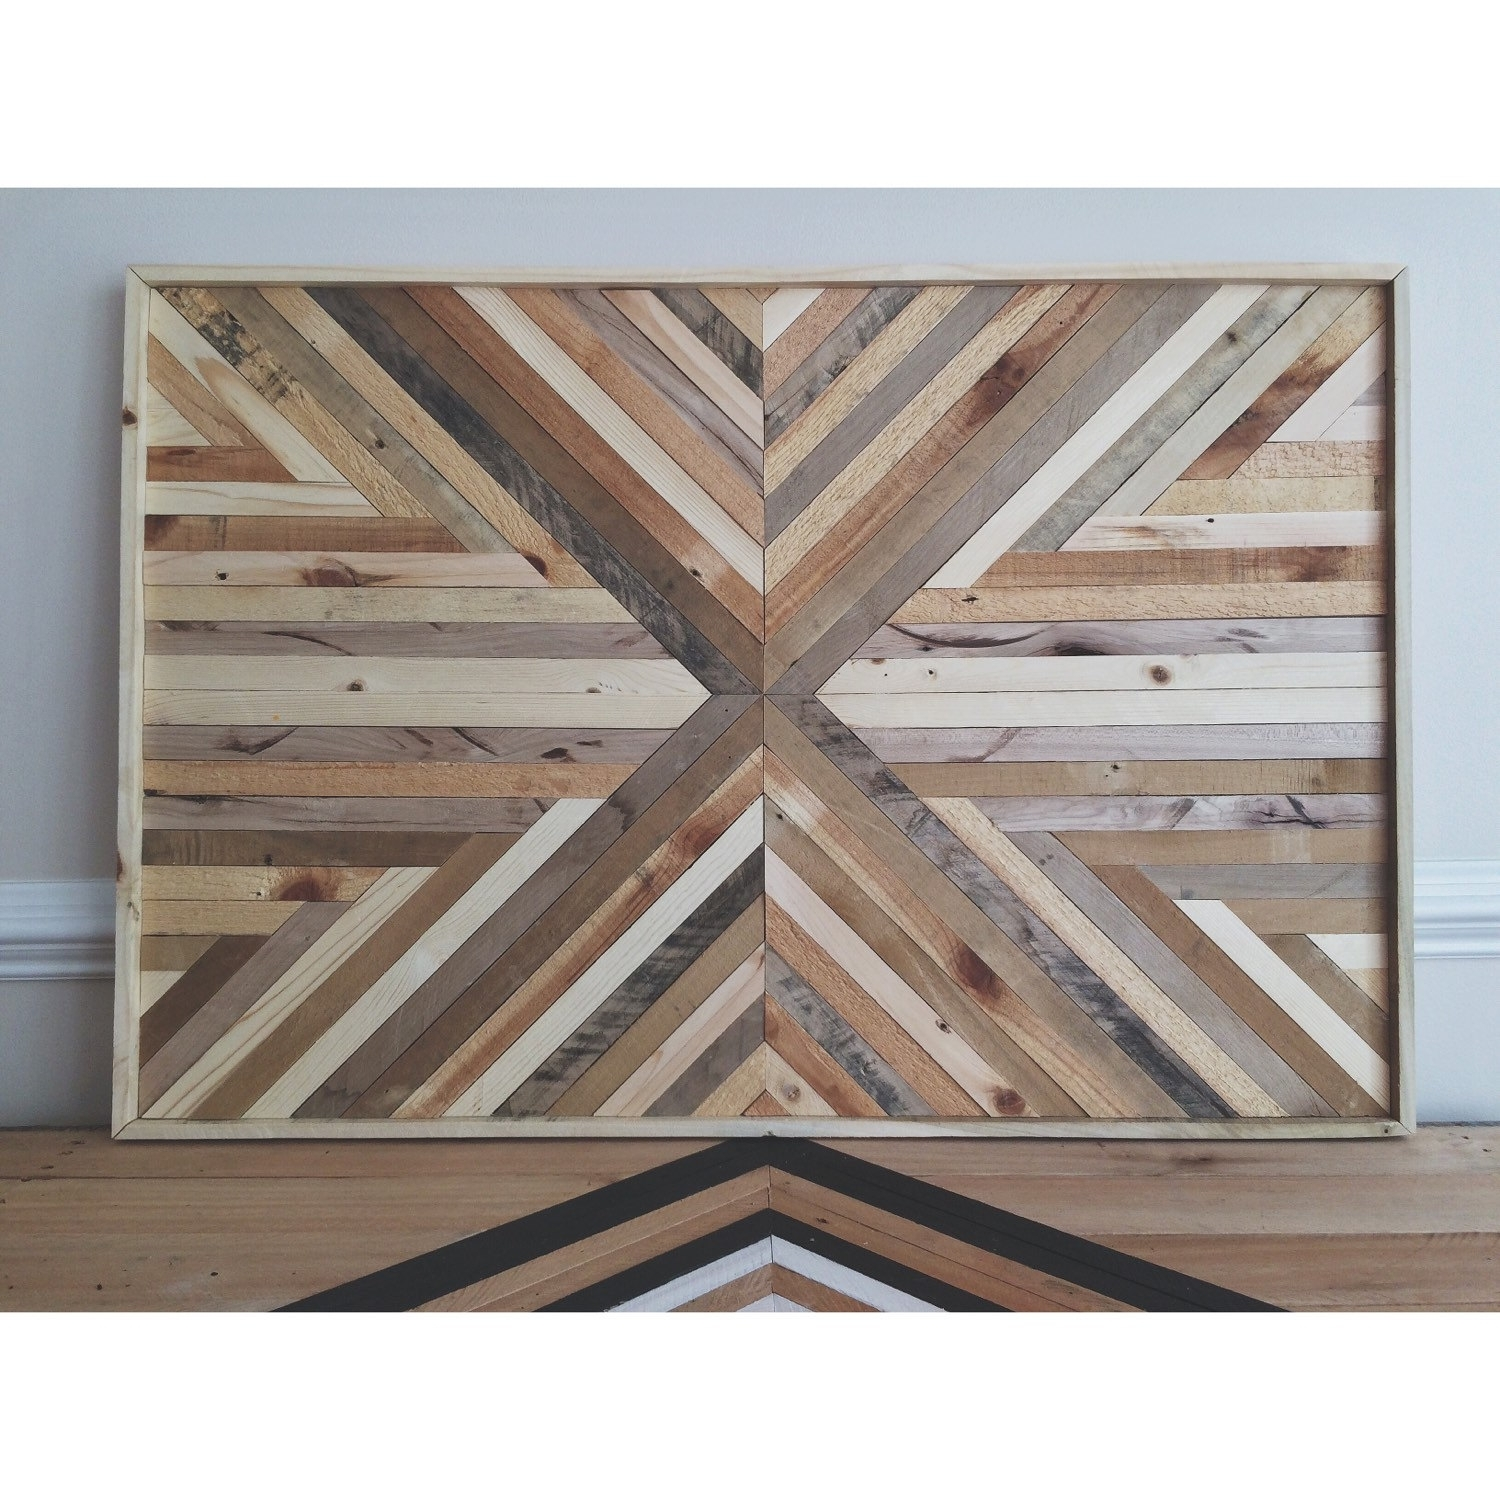 Wall Art Reclaimed Wood – Amthuchanoi Inside Most Popular Reclaimed Wood Wall Art (View 4 of 15)